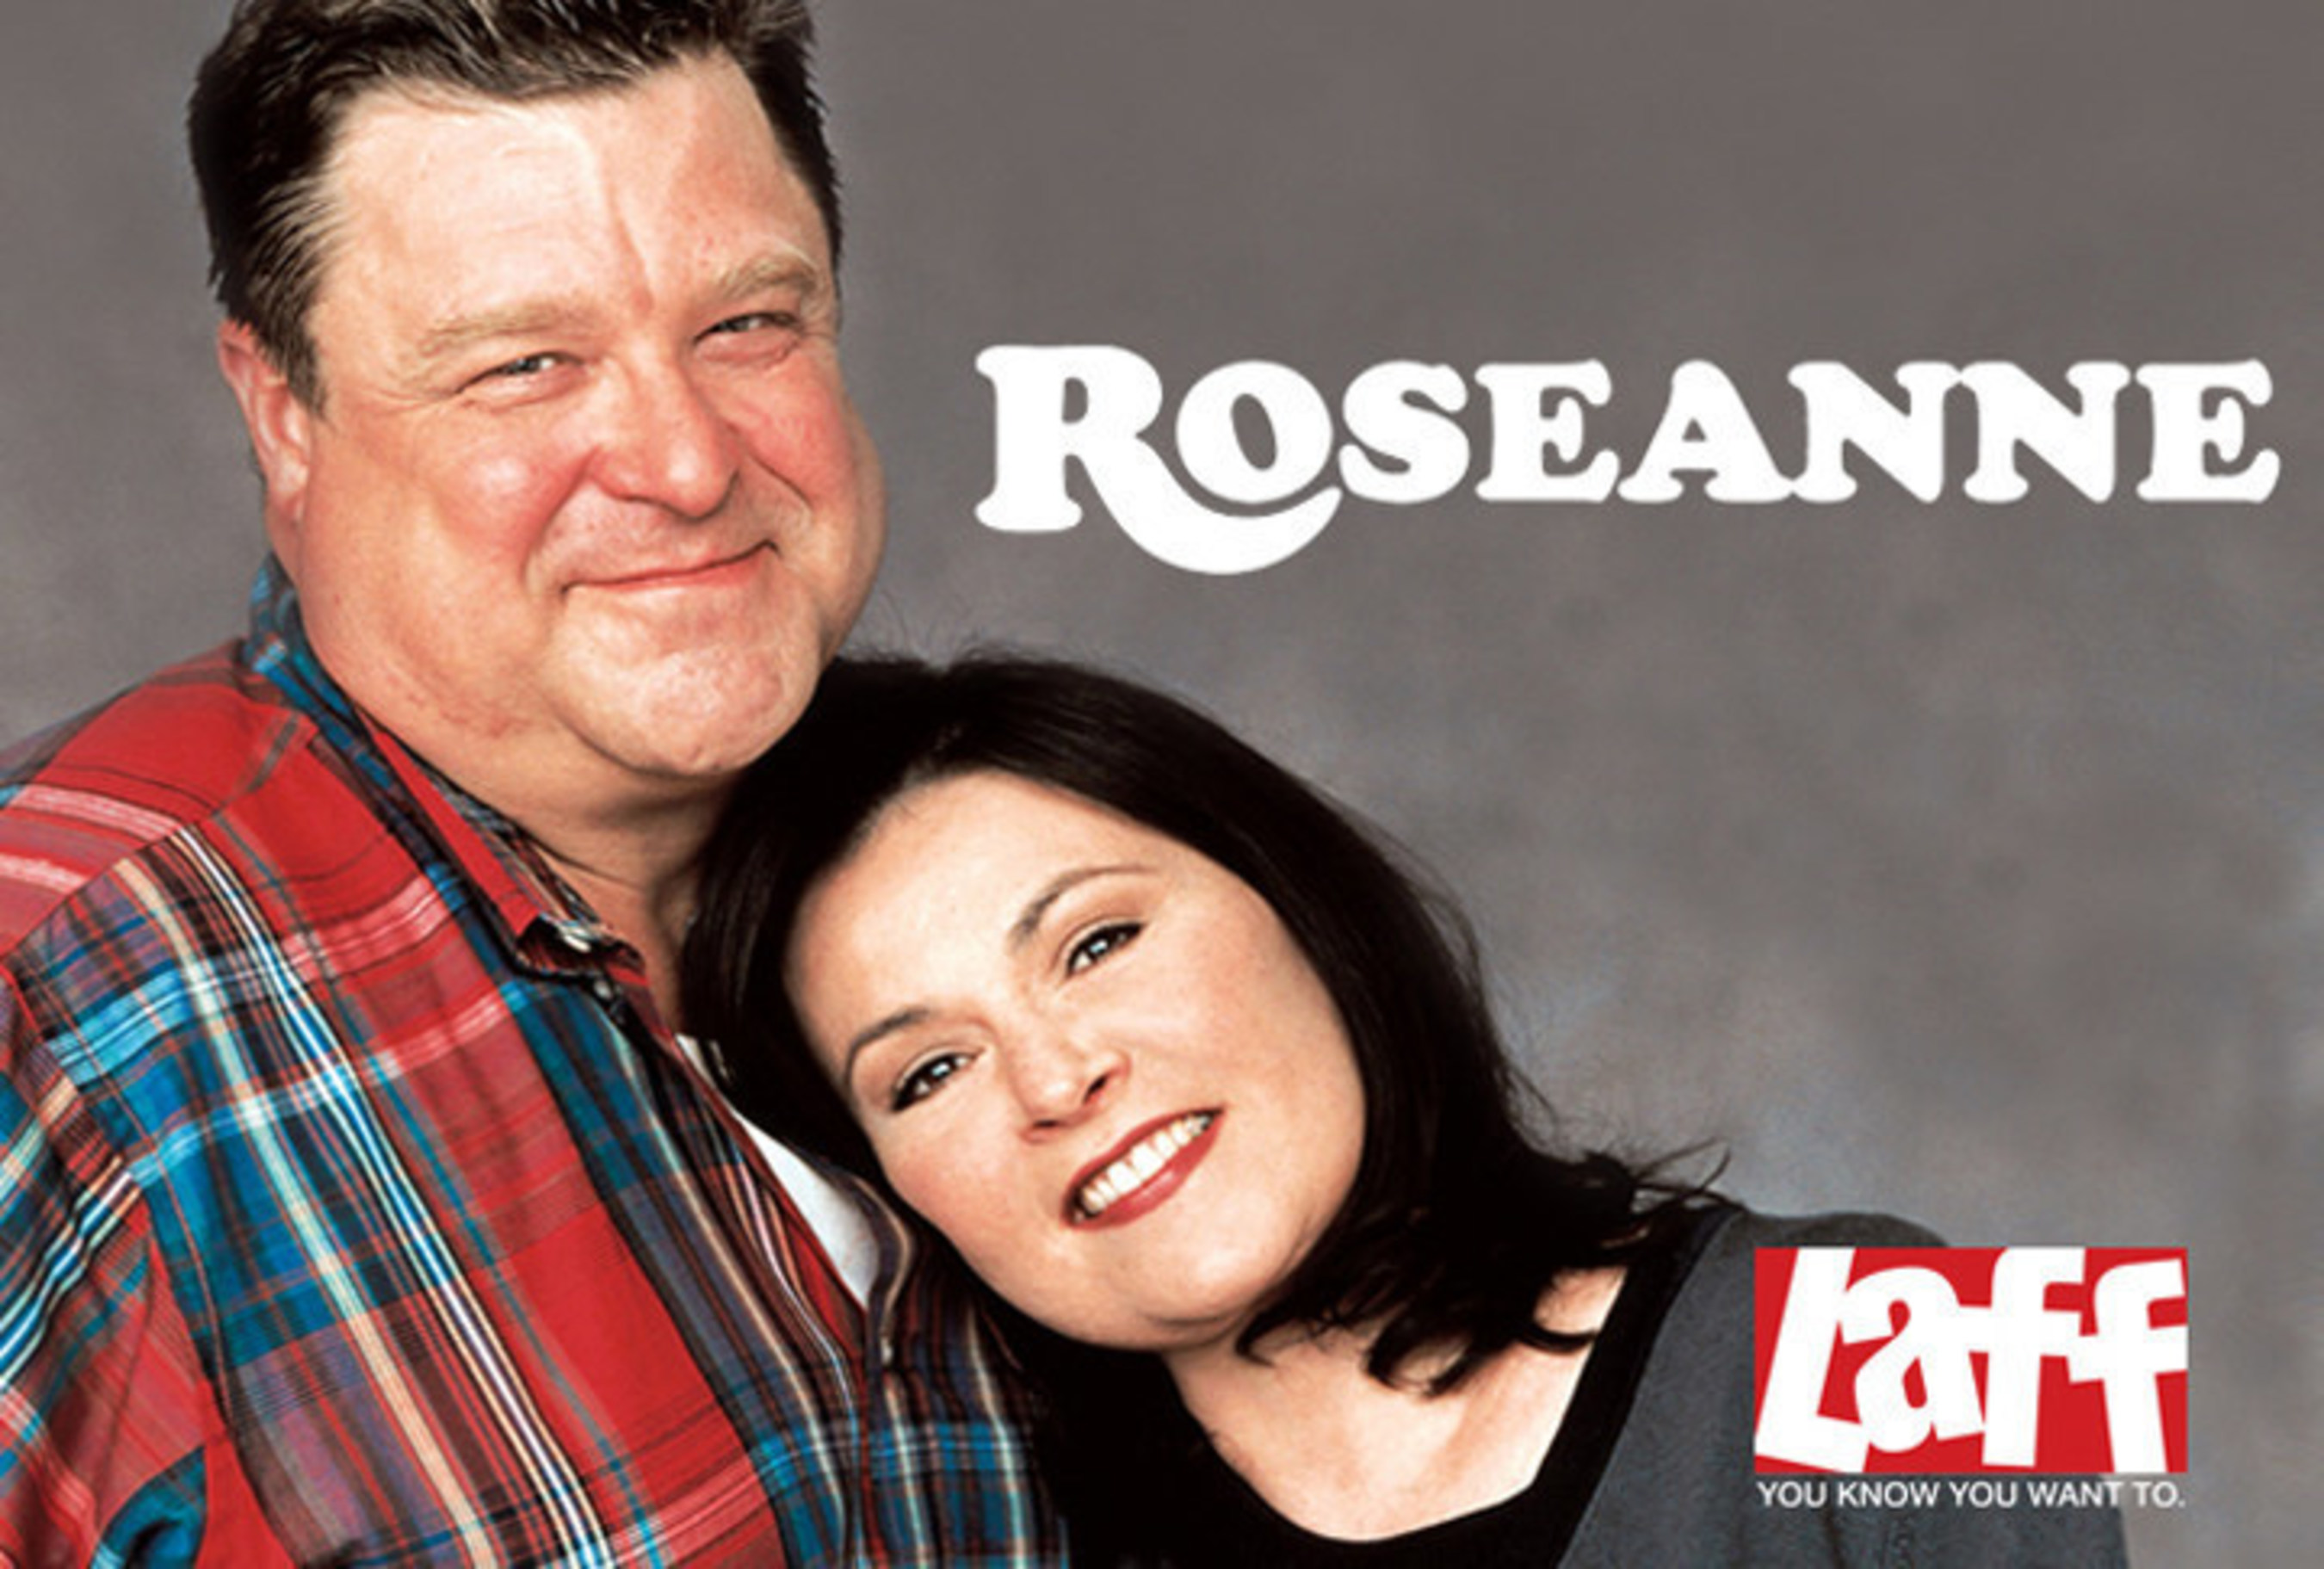 roseanne debuts on laff sun oct 30 with complete first season marathon all seven legendary halloween episodes on mon oct 31